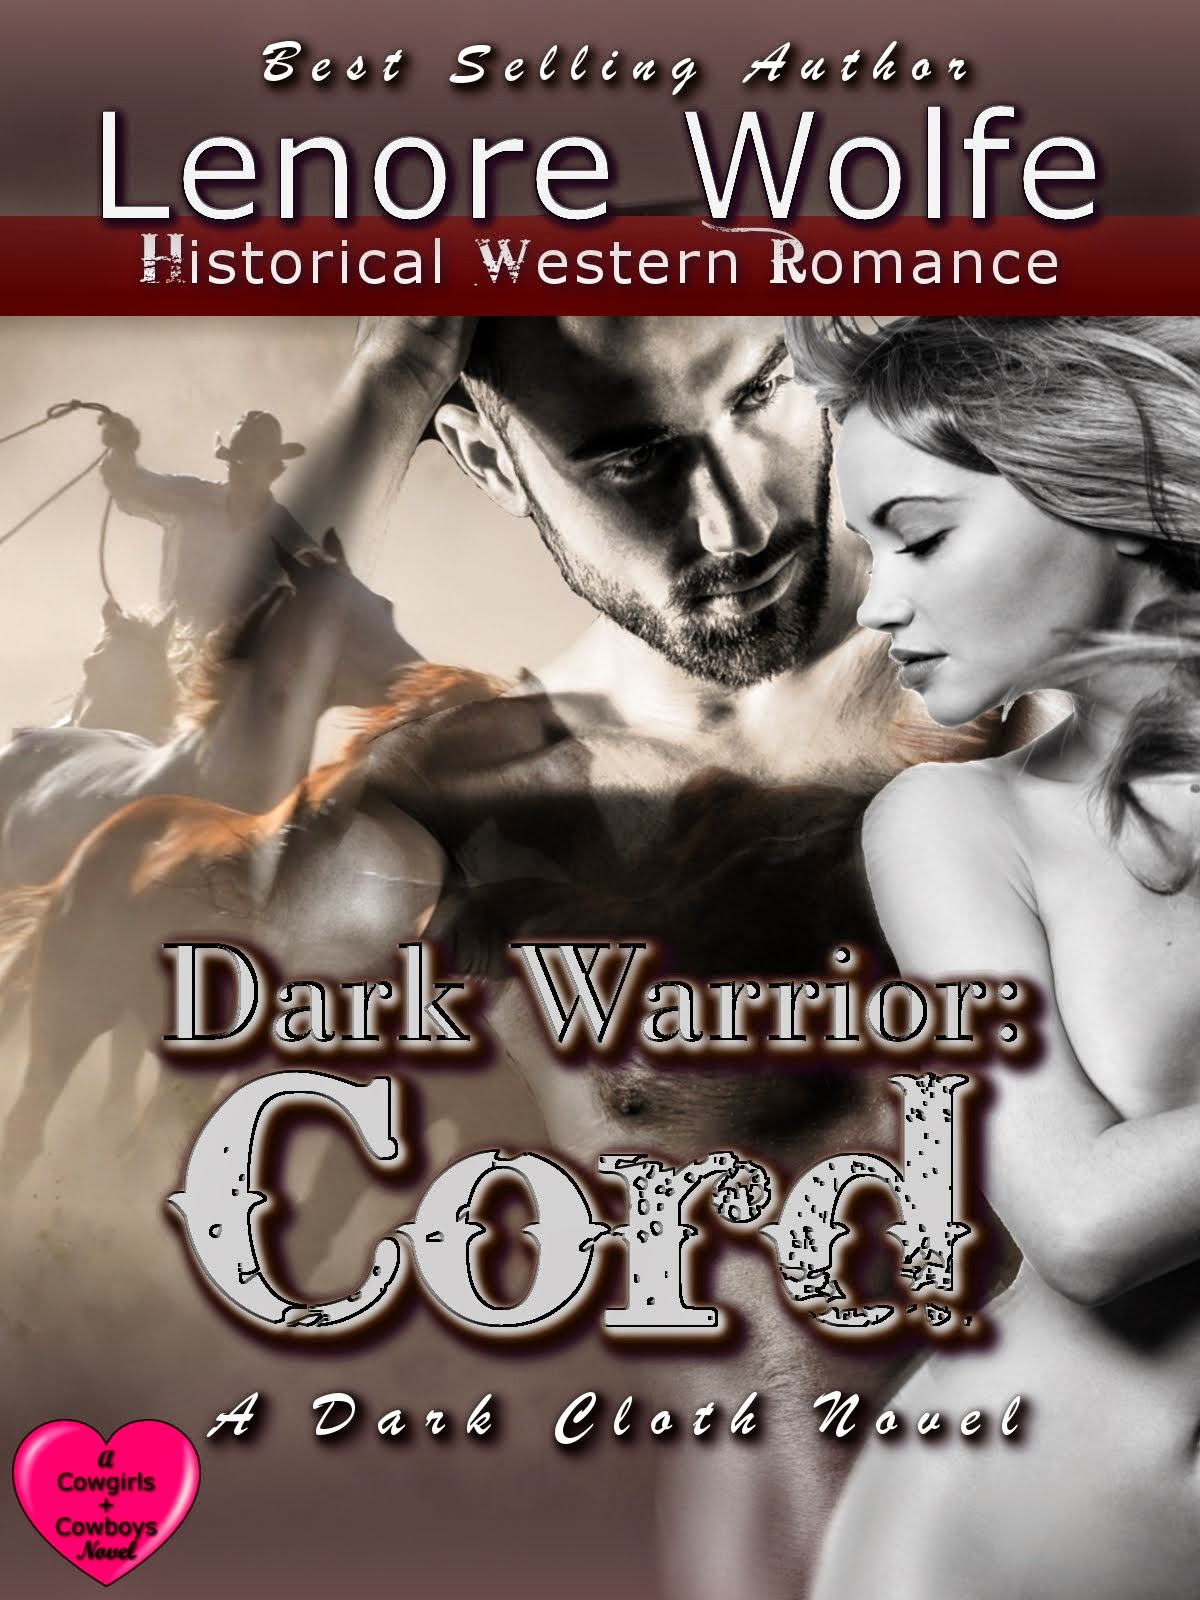 Dark Warrior: Cord at Amazon now!